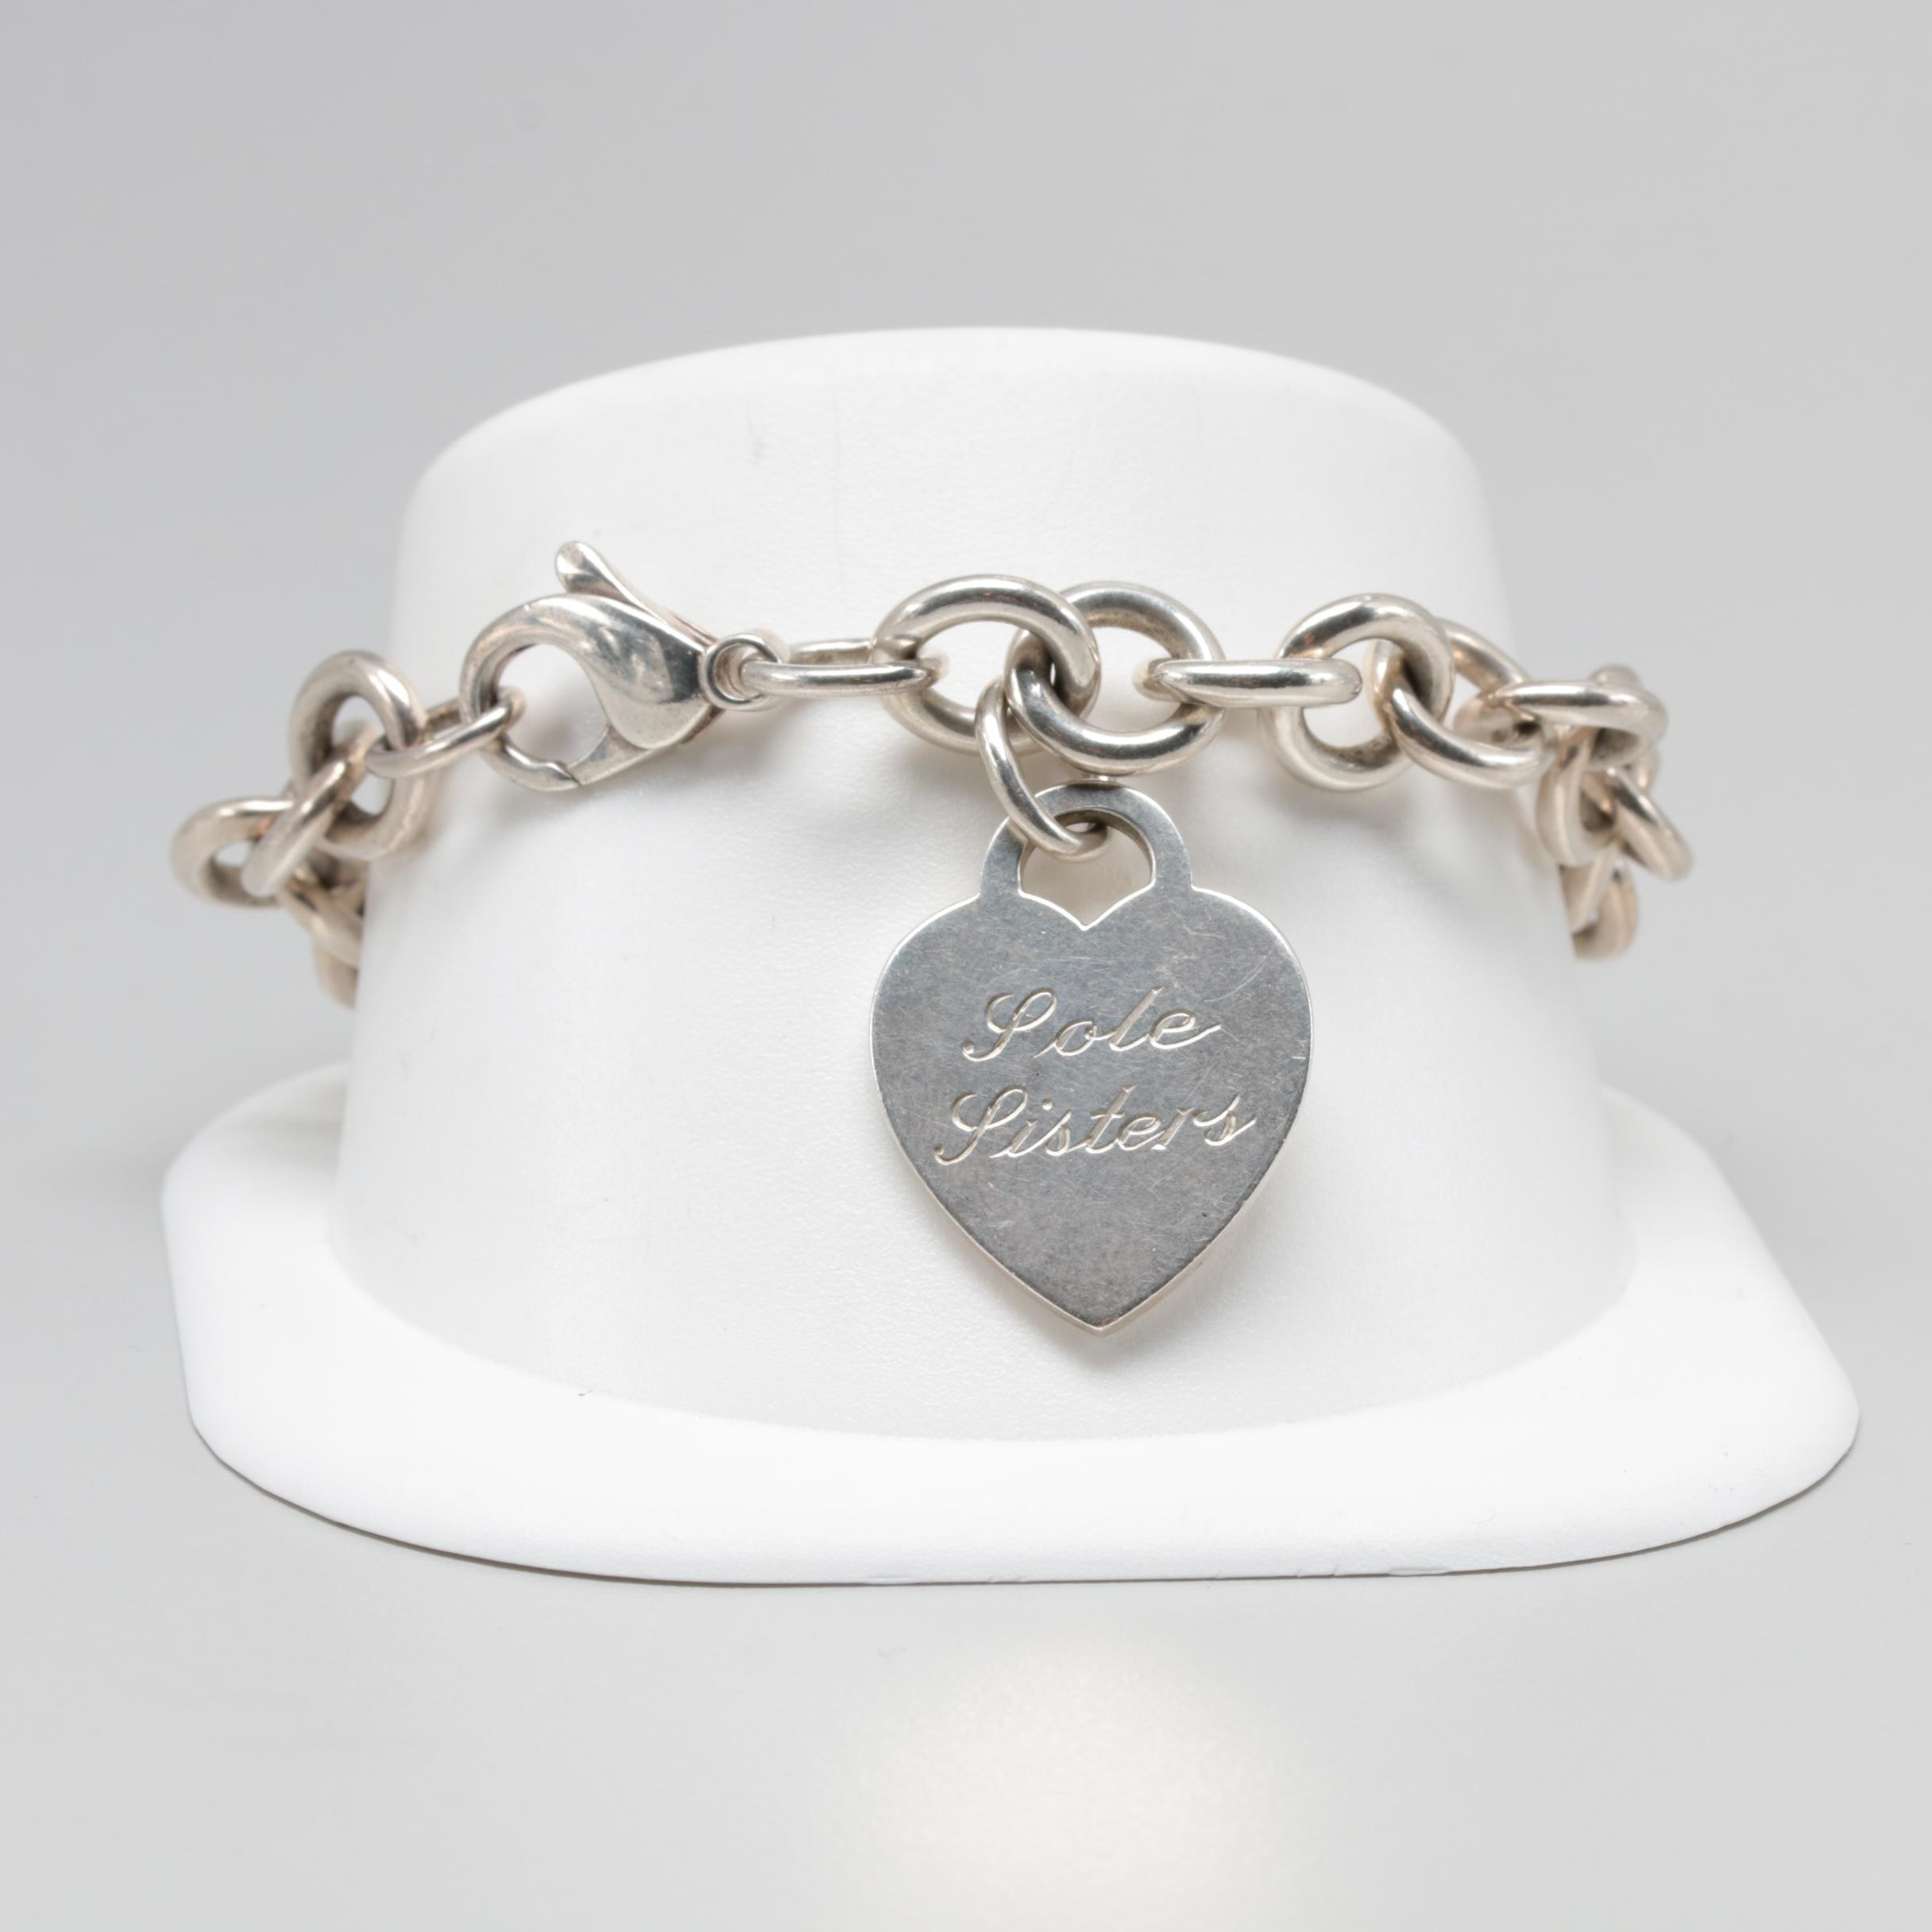 "Tiffany & Co. Sterling Silver ""Sole Sisters"" Tag Bracelet"